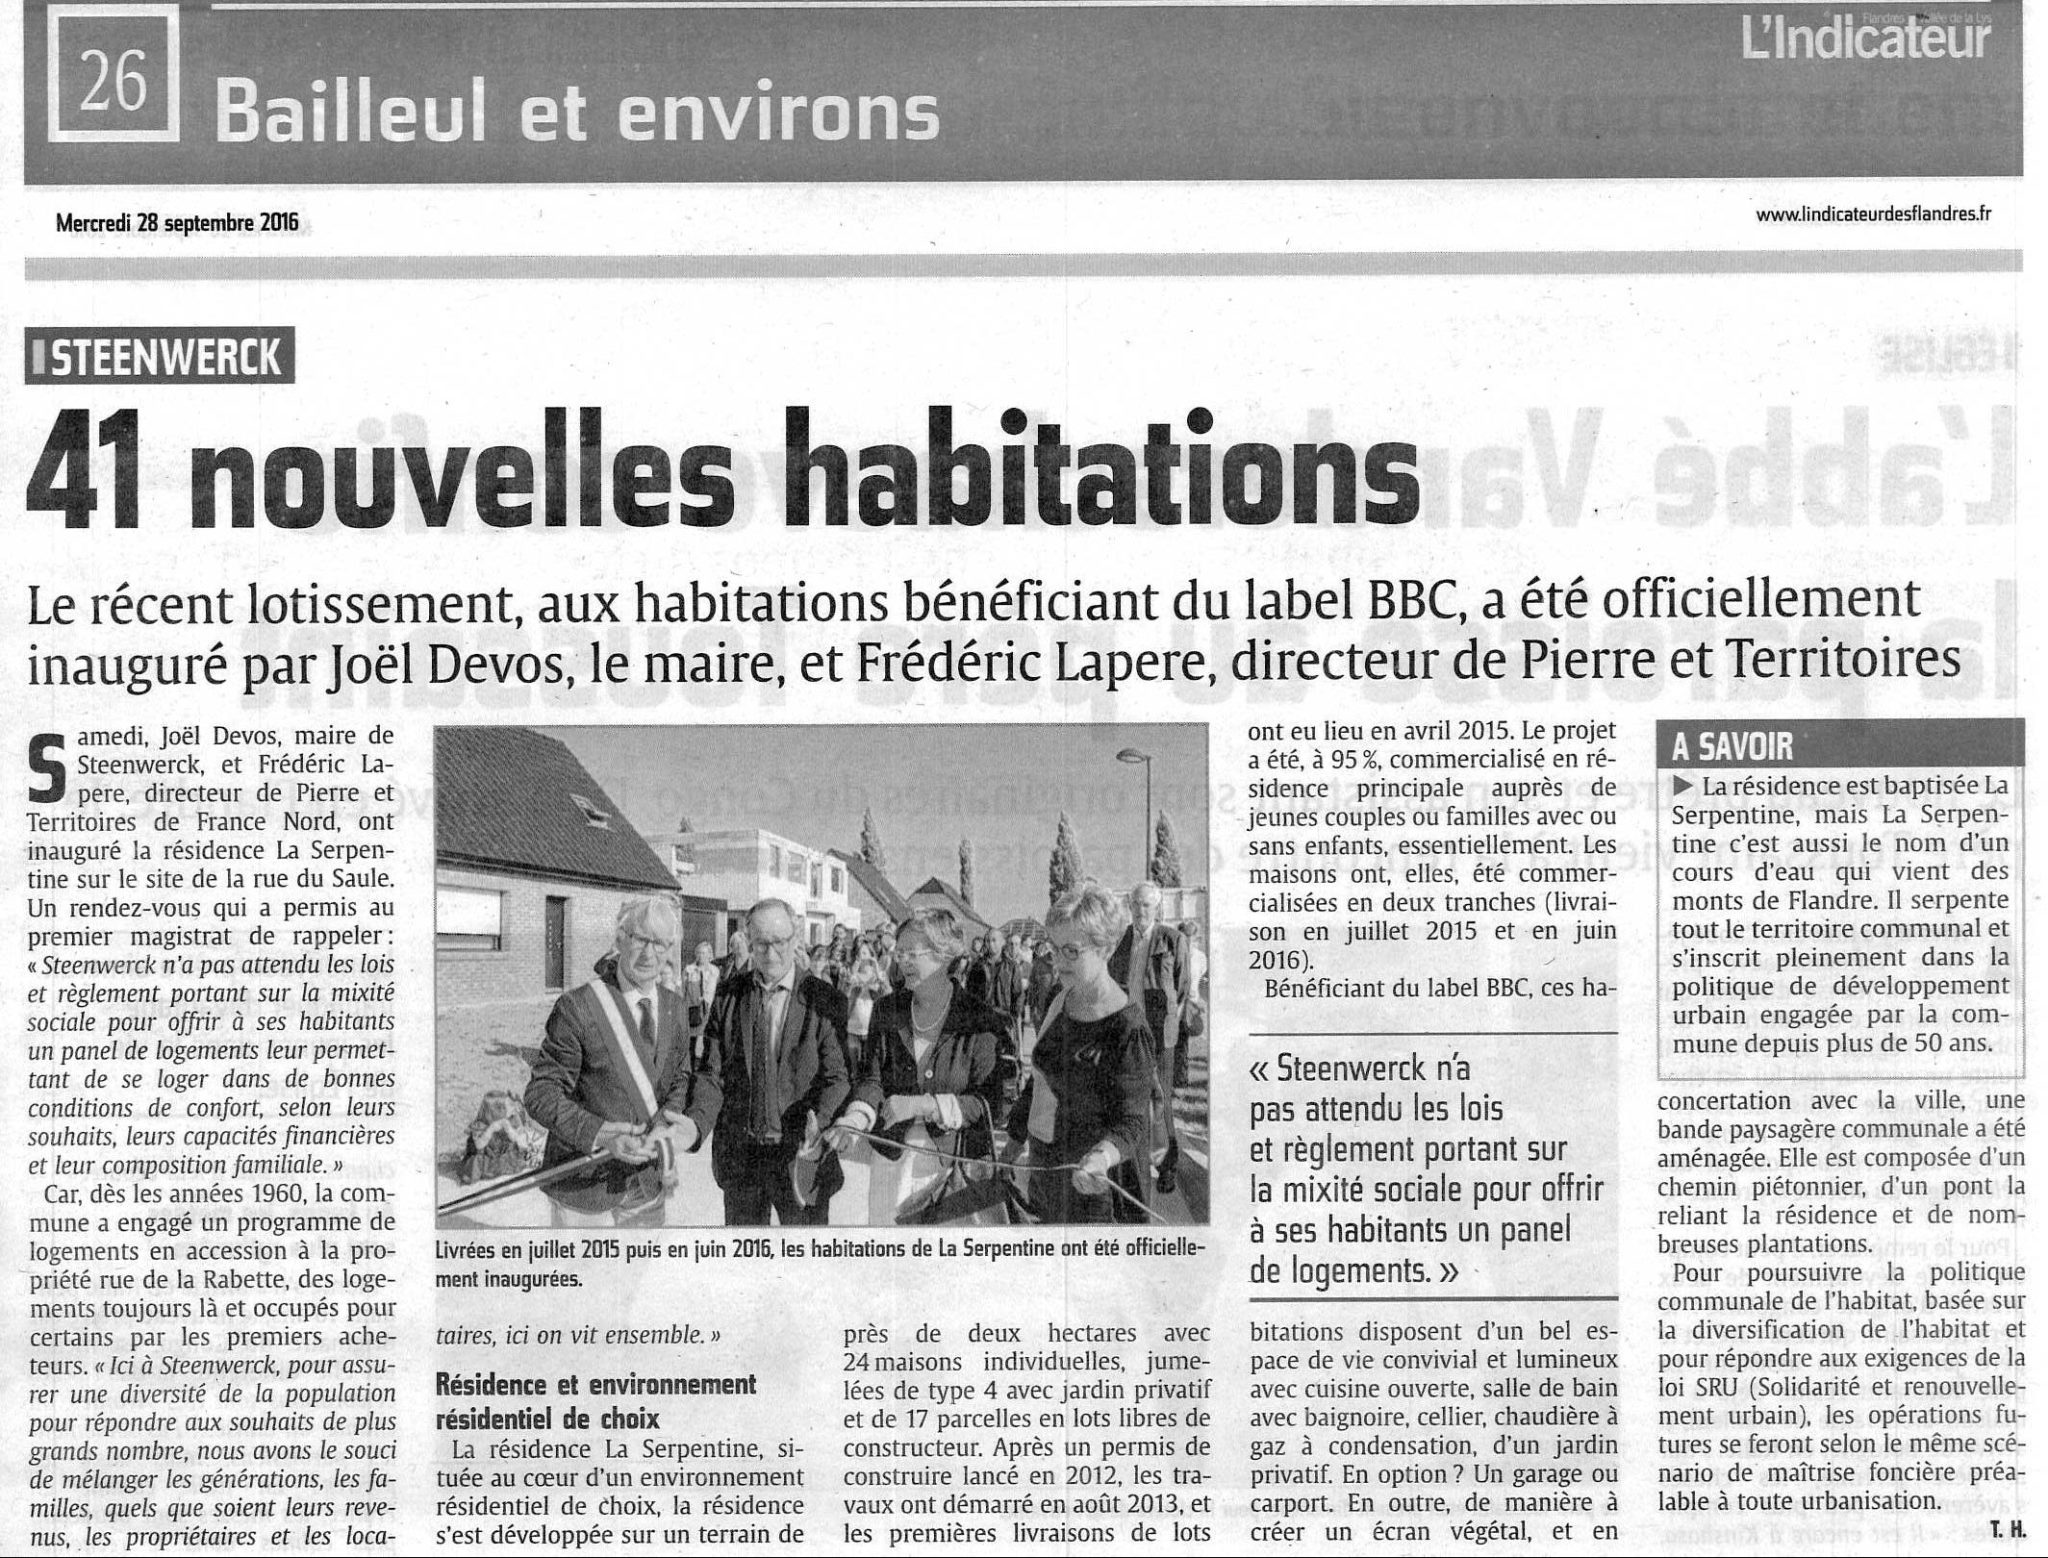 Article Indicateur